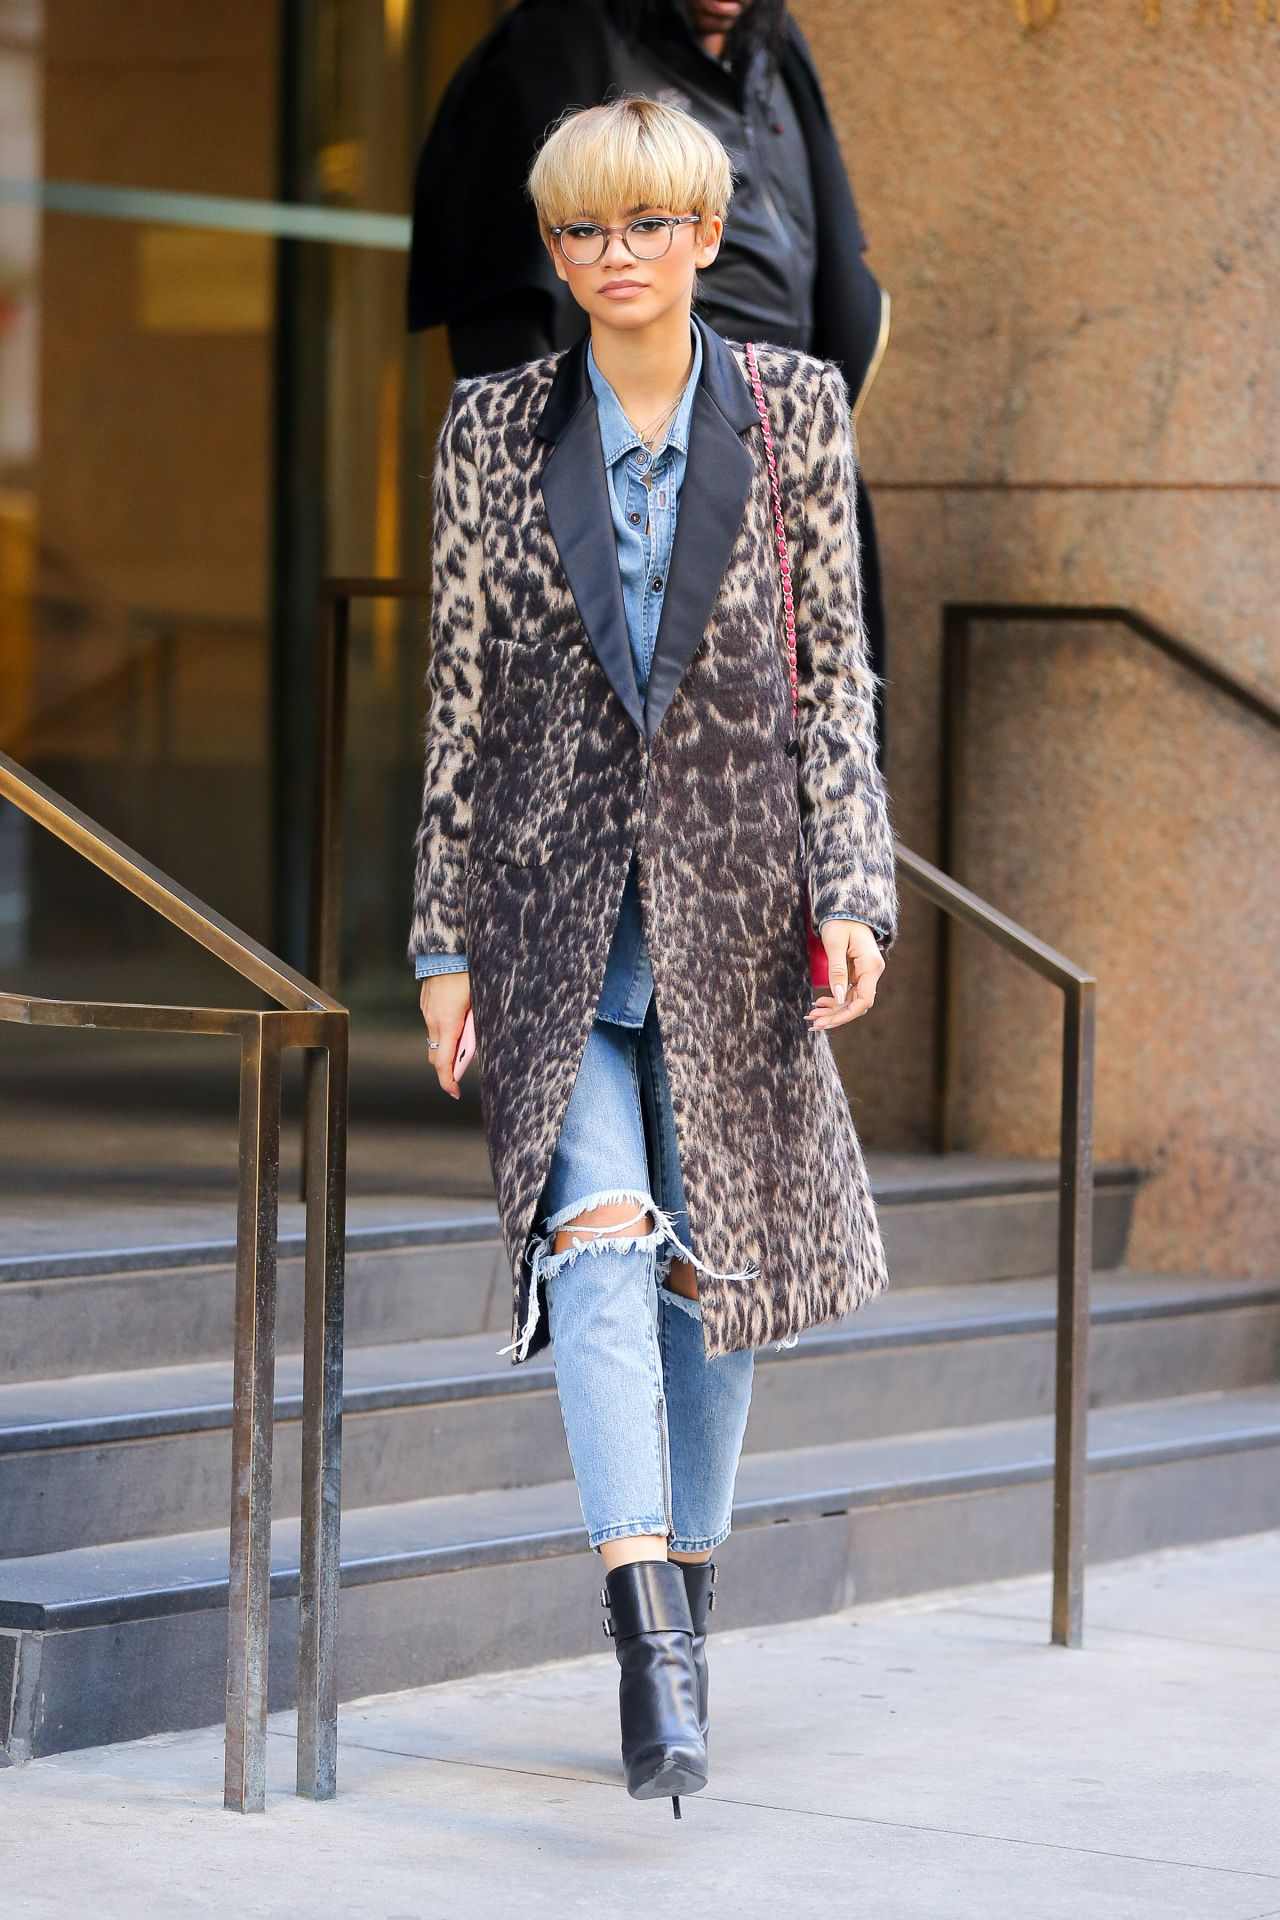 Zendaya Coleman Street Fashion Out In New York City 2 22 2016